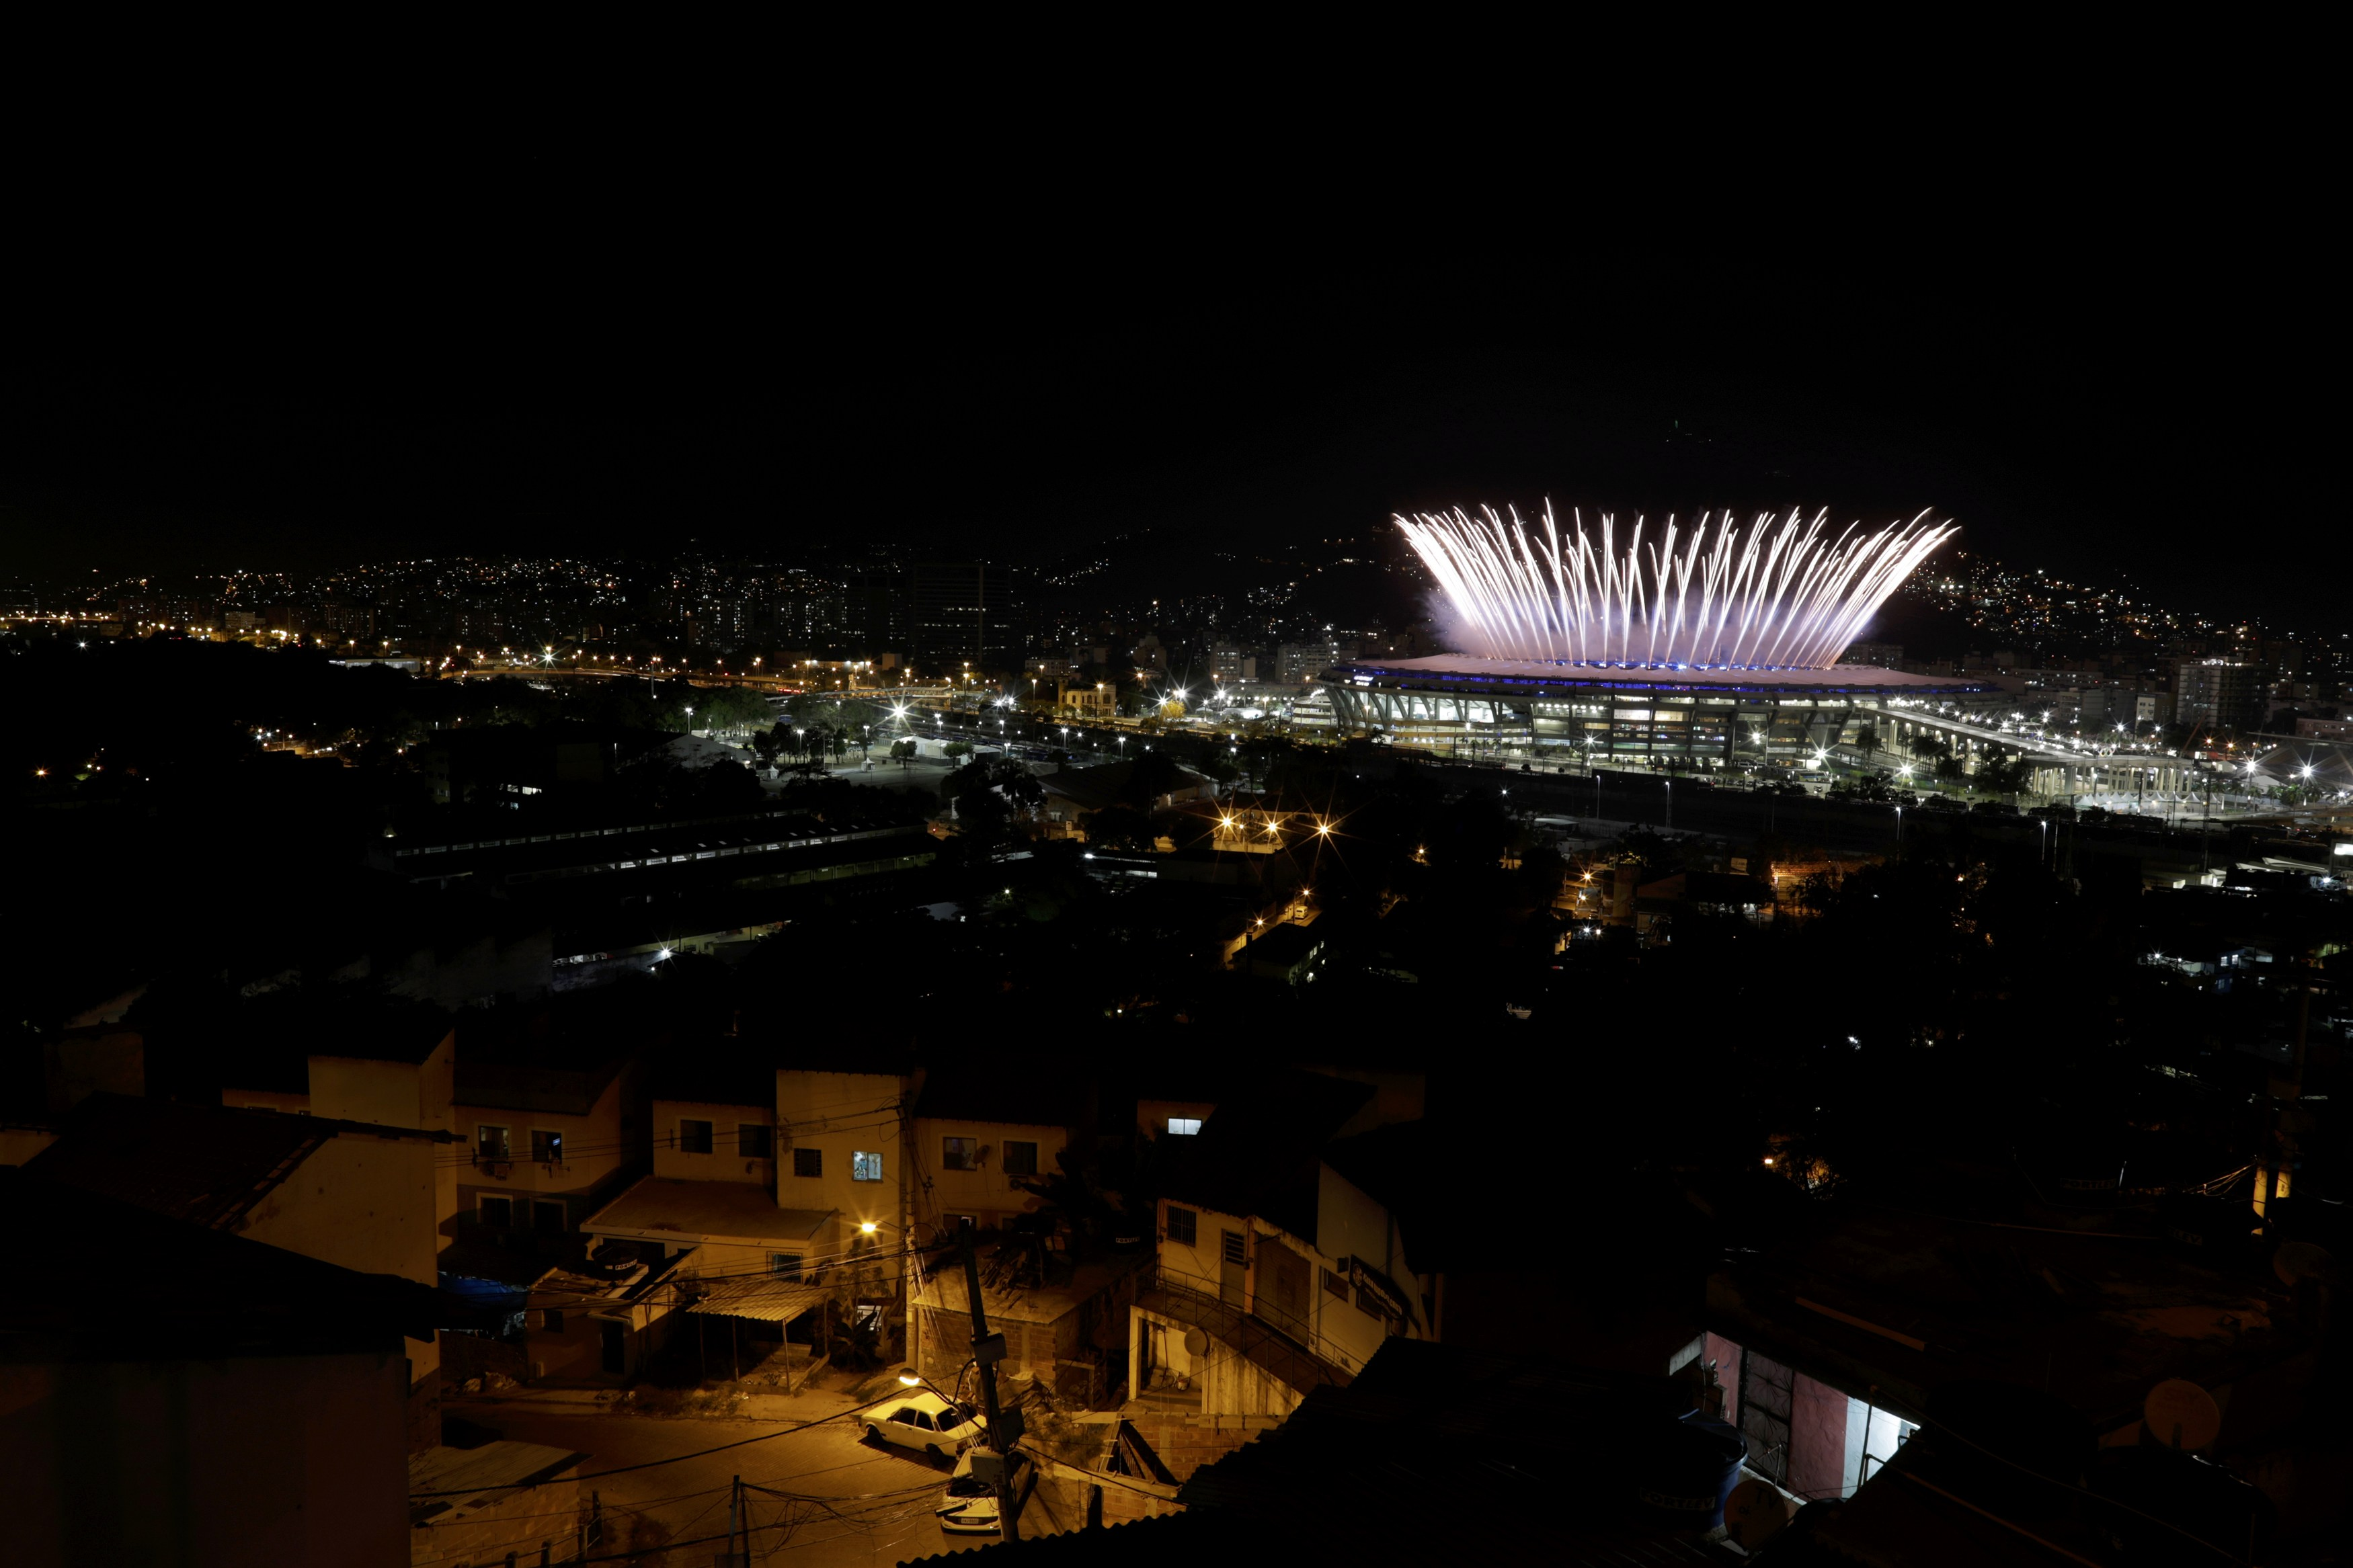 2016 Rio Olympics - Opening Ceremony - Maracana - Rio de Janeiro, Brazil - 05/08/2016. The Maracana Olympic Stadium during the opening ceremony is seen from the Mangueira favela slum. REUTERS/Ricardo Moraes TPX IMAGES OF THE DAY FOR EDITORIAL USE ONLY. NOT FOR SALE FOR MARKETING OR ADVERTISING CAMPAIGNS.